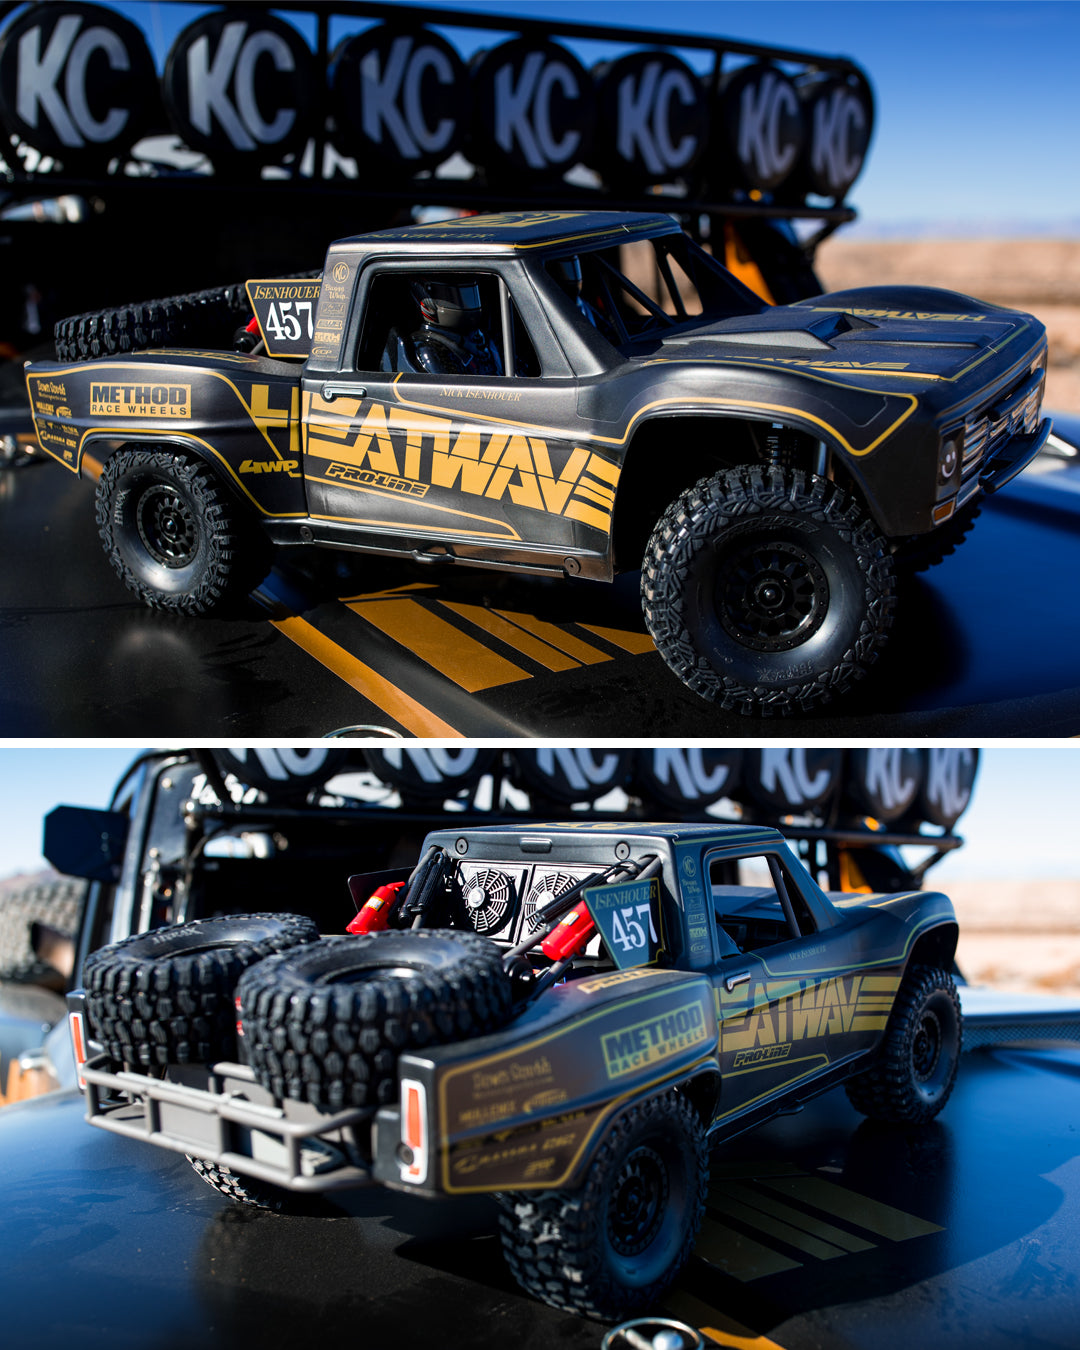 Heat Wave RC car